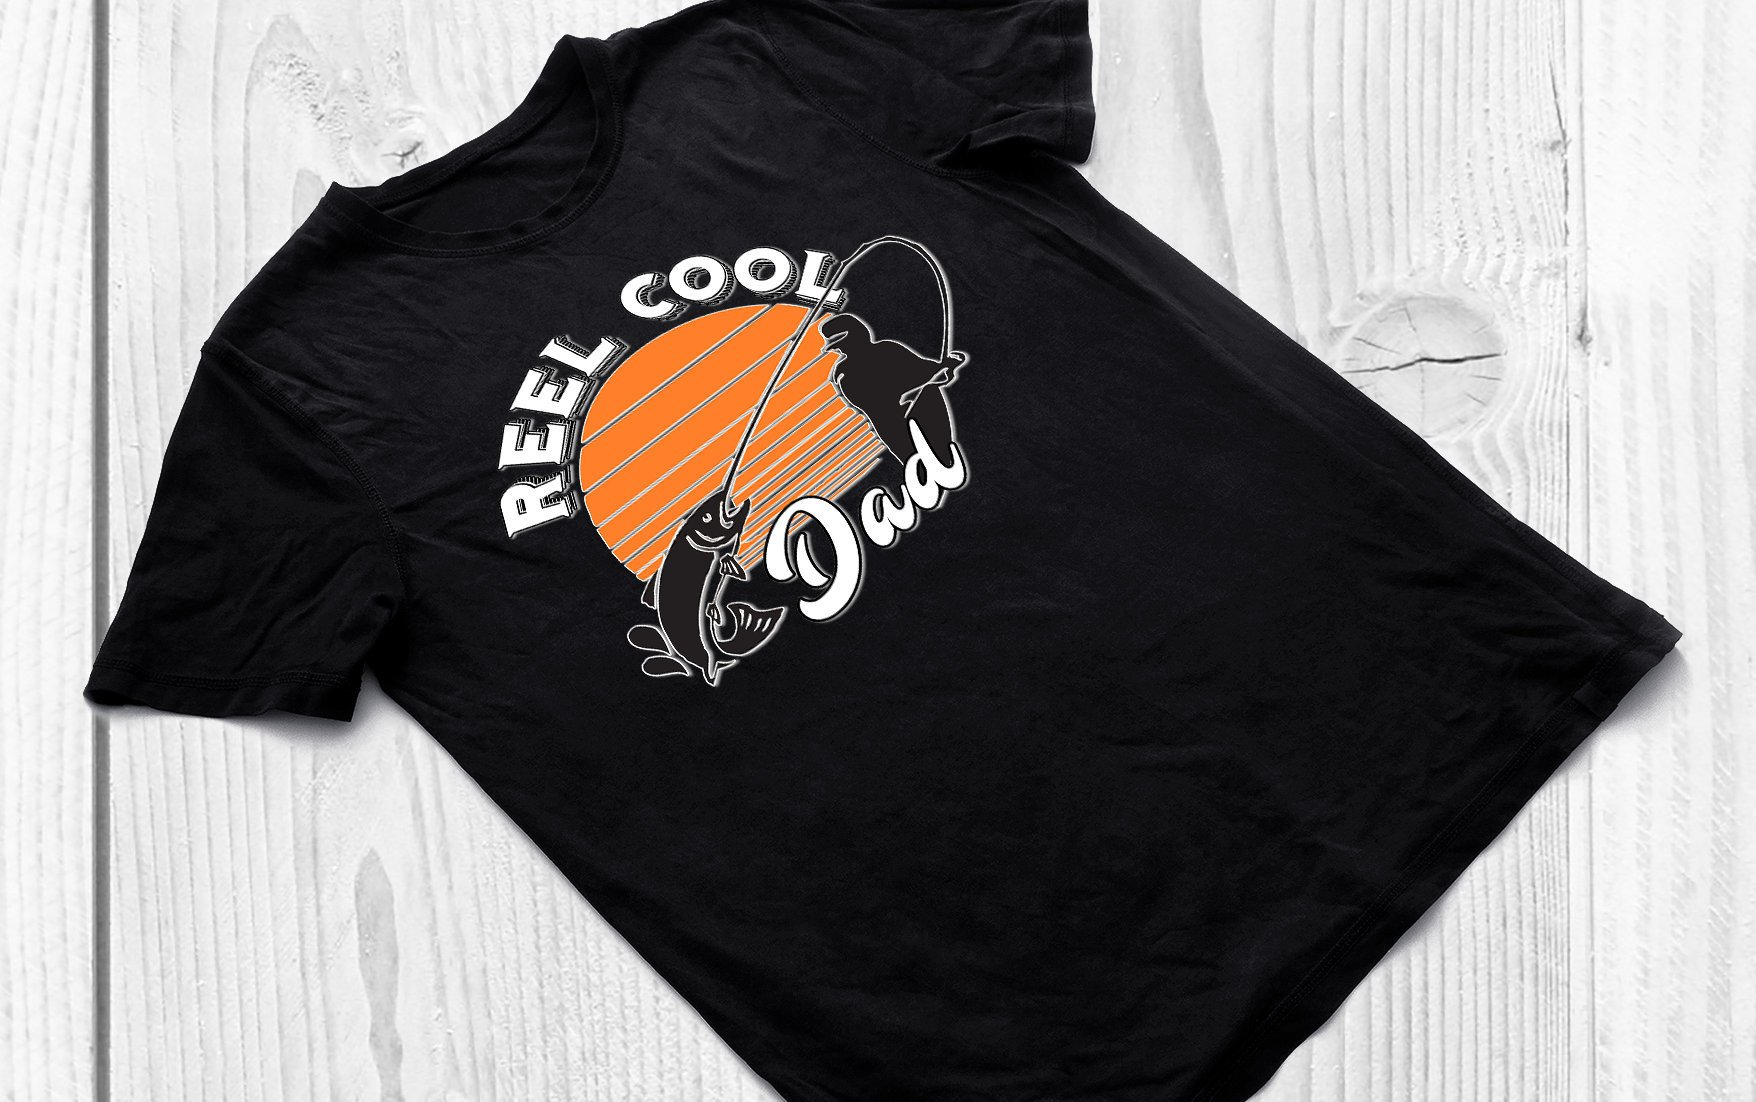 36cfbcb9 Funny Fishing Shirt | Reel Cool Dad | Gift for Father's Day on Storenvy